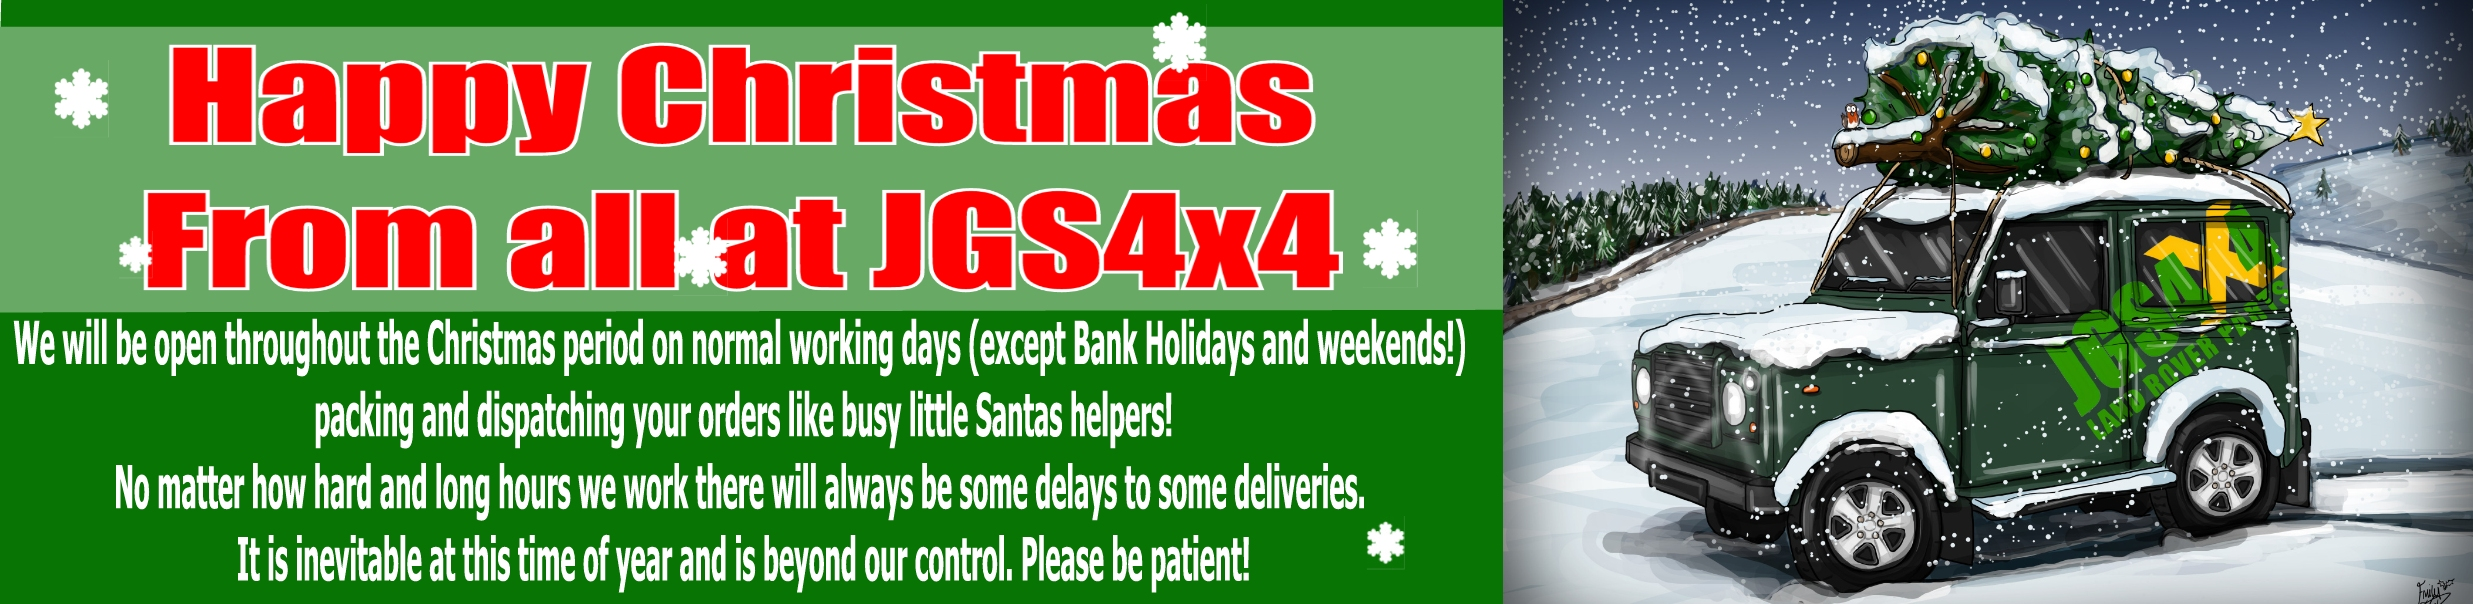 Happy Christmas from JGS4x4!